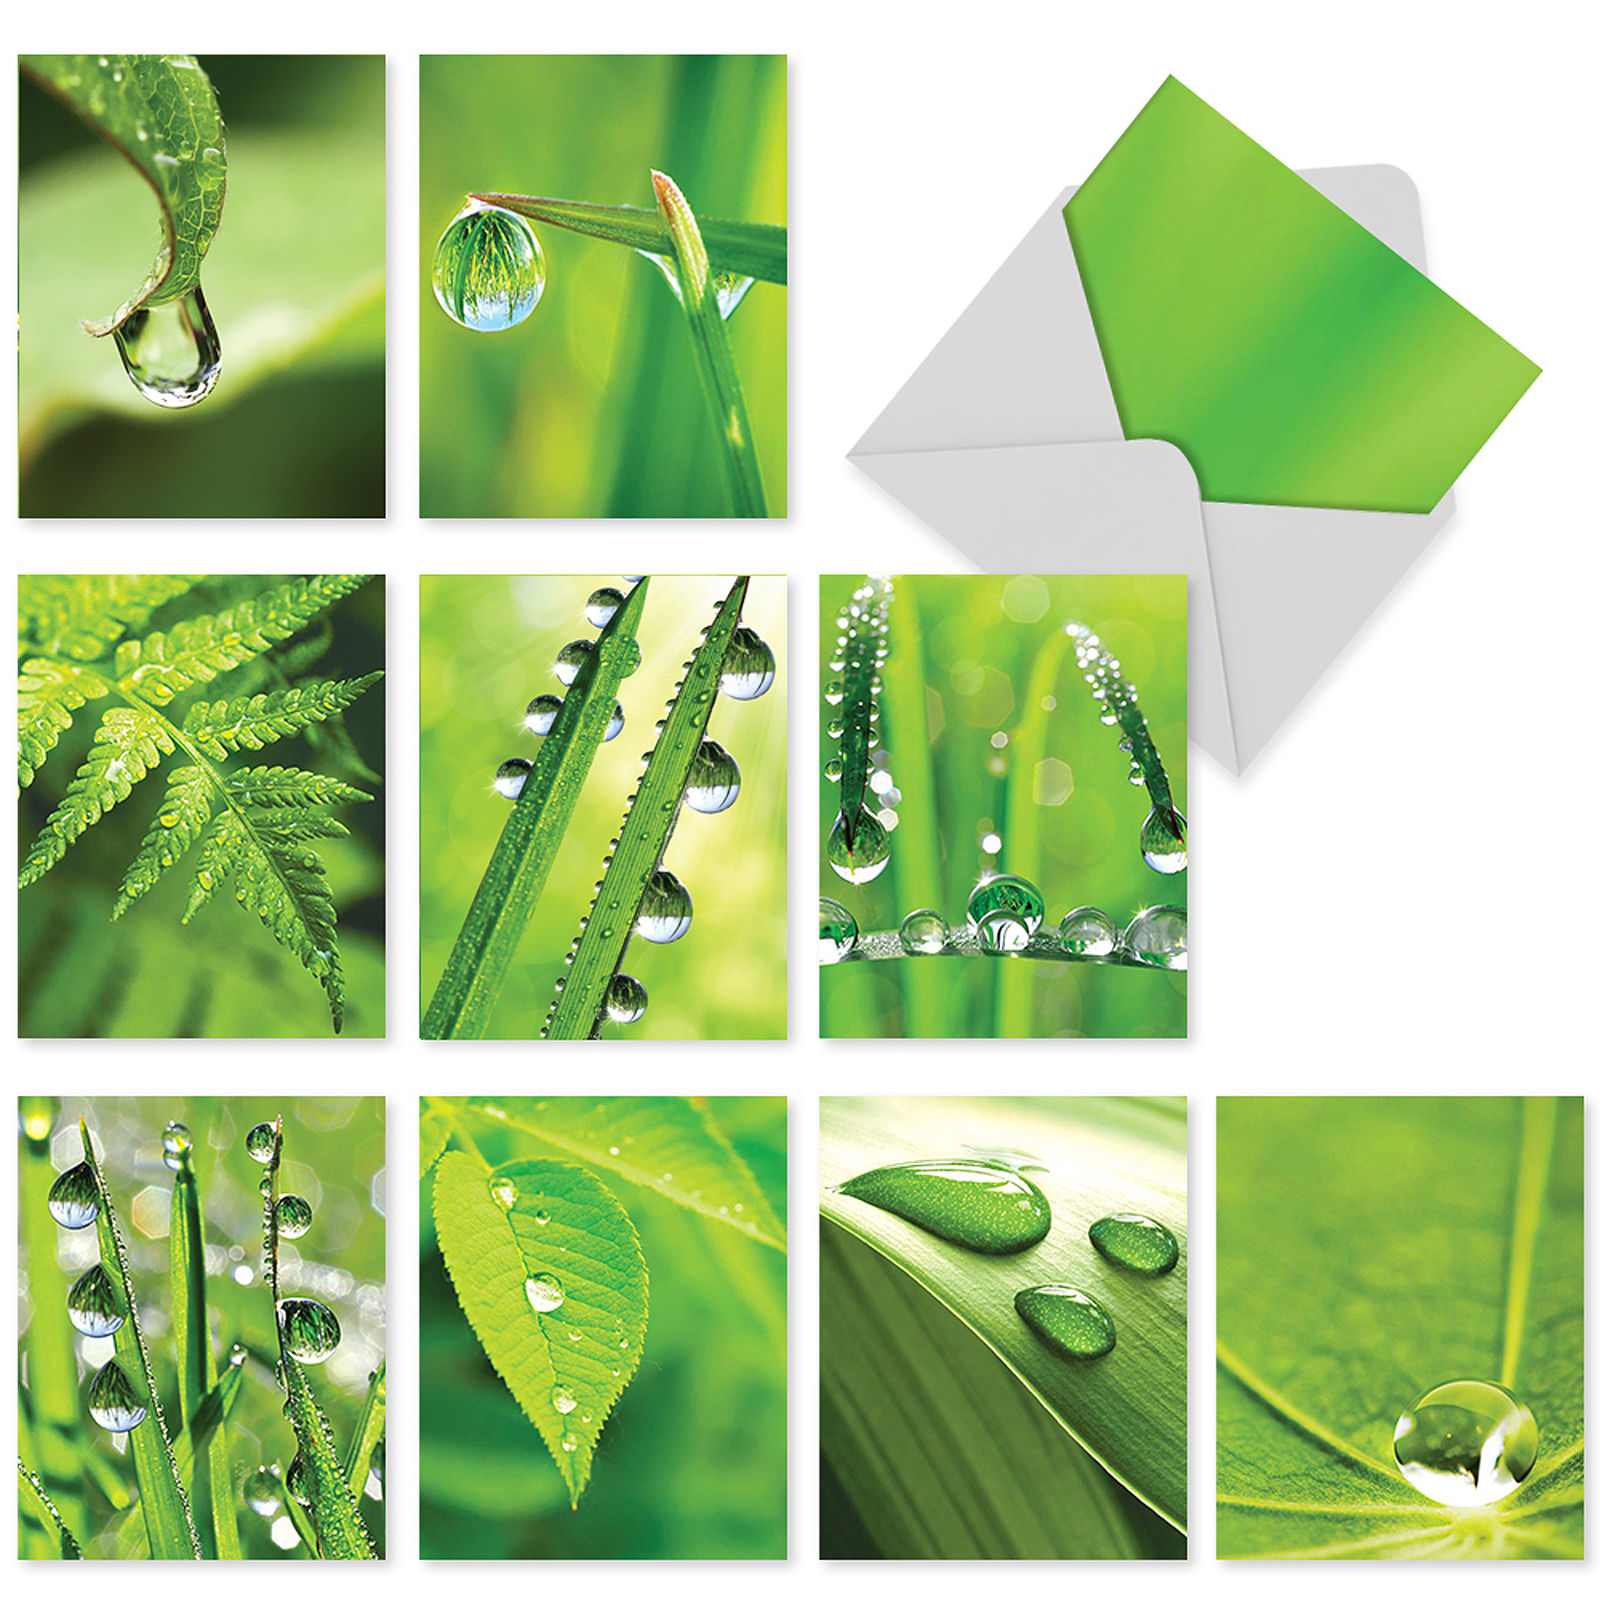 'M3015 M3015 Just Dew It' 10 Assorted Thank You Greeting Cards Feature Dew Drops on Leafy Greens with Envelopes by The Best Card Company